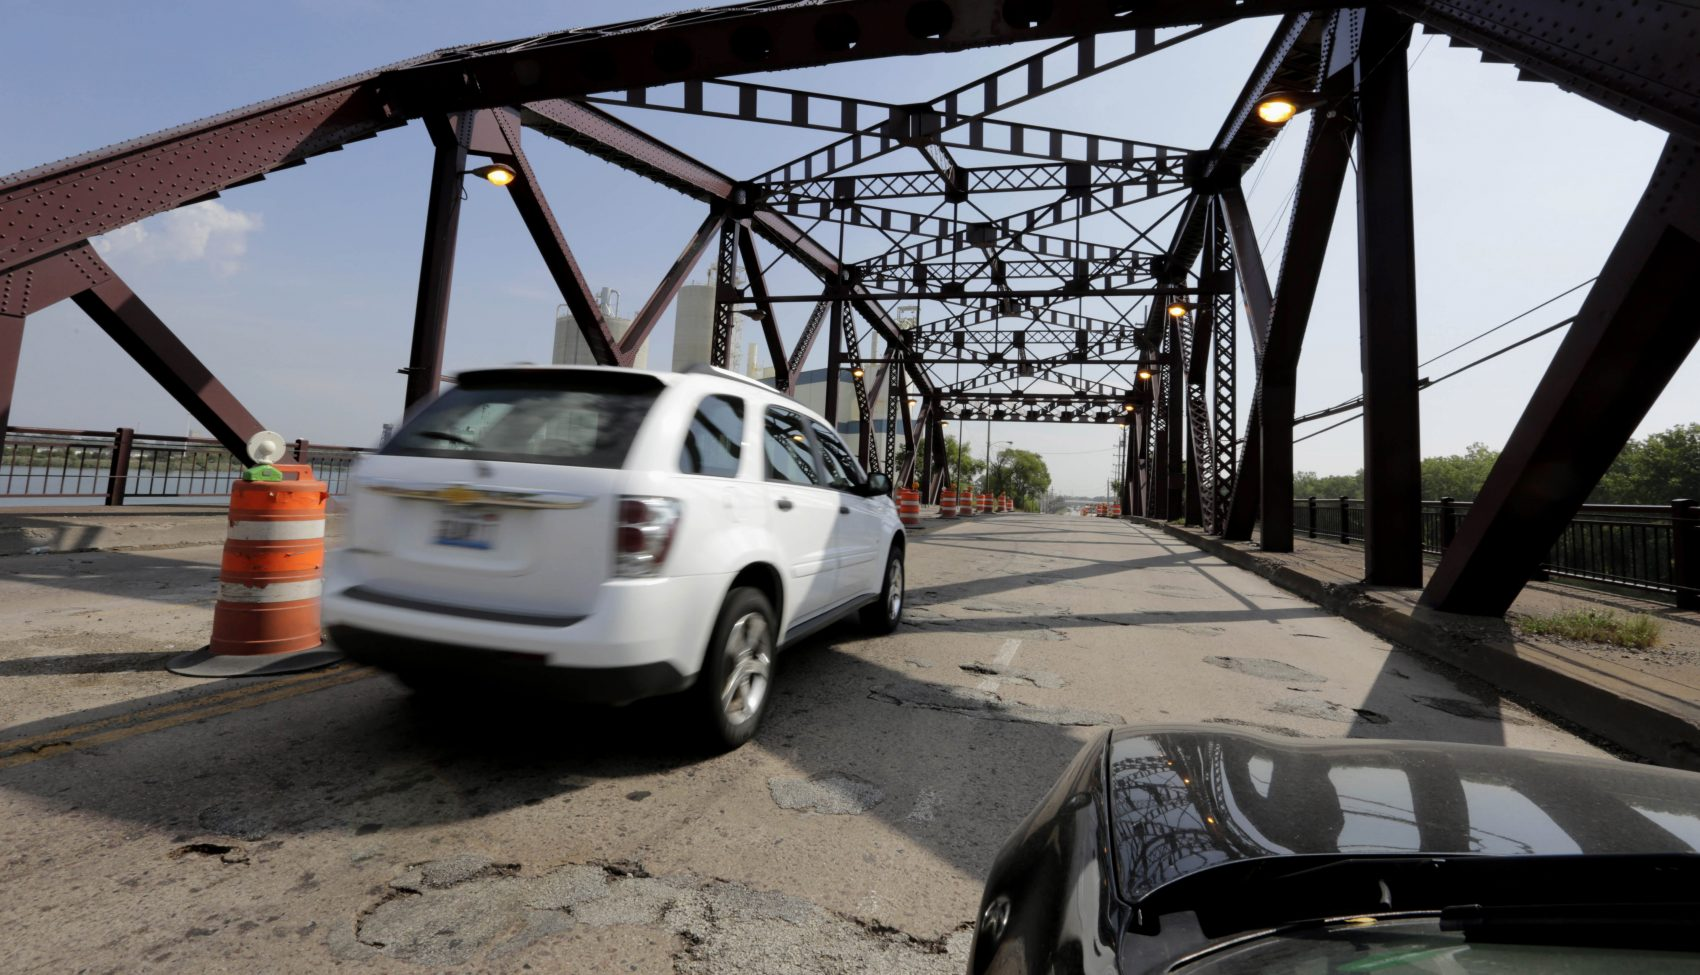 """Vehicles drive on the 130th St. bridge over the Little Calumet River in Chicago in 2013. The bridge was classified as both """"structurally deficient"""" and """"fracture critical"""" in federal data for 2012. (M. Spencer Green/AP)"""